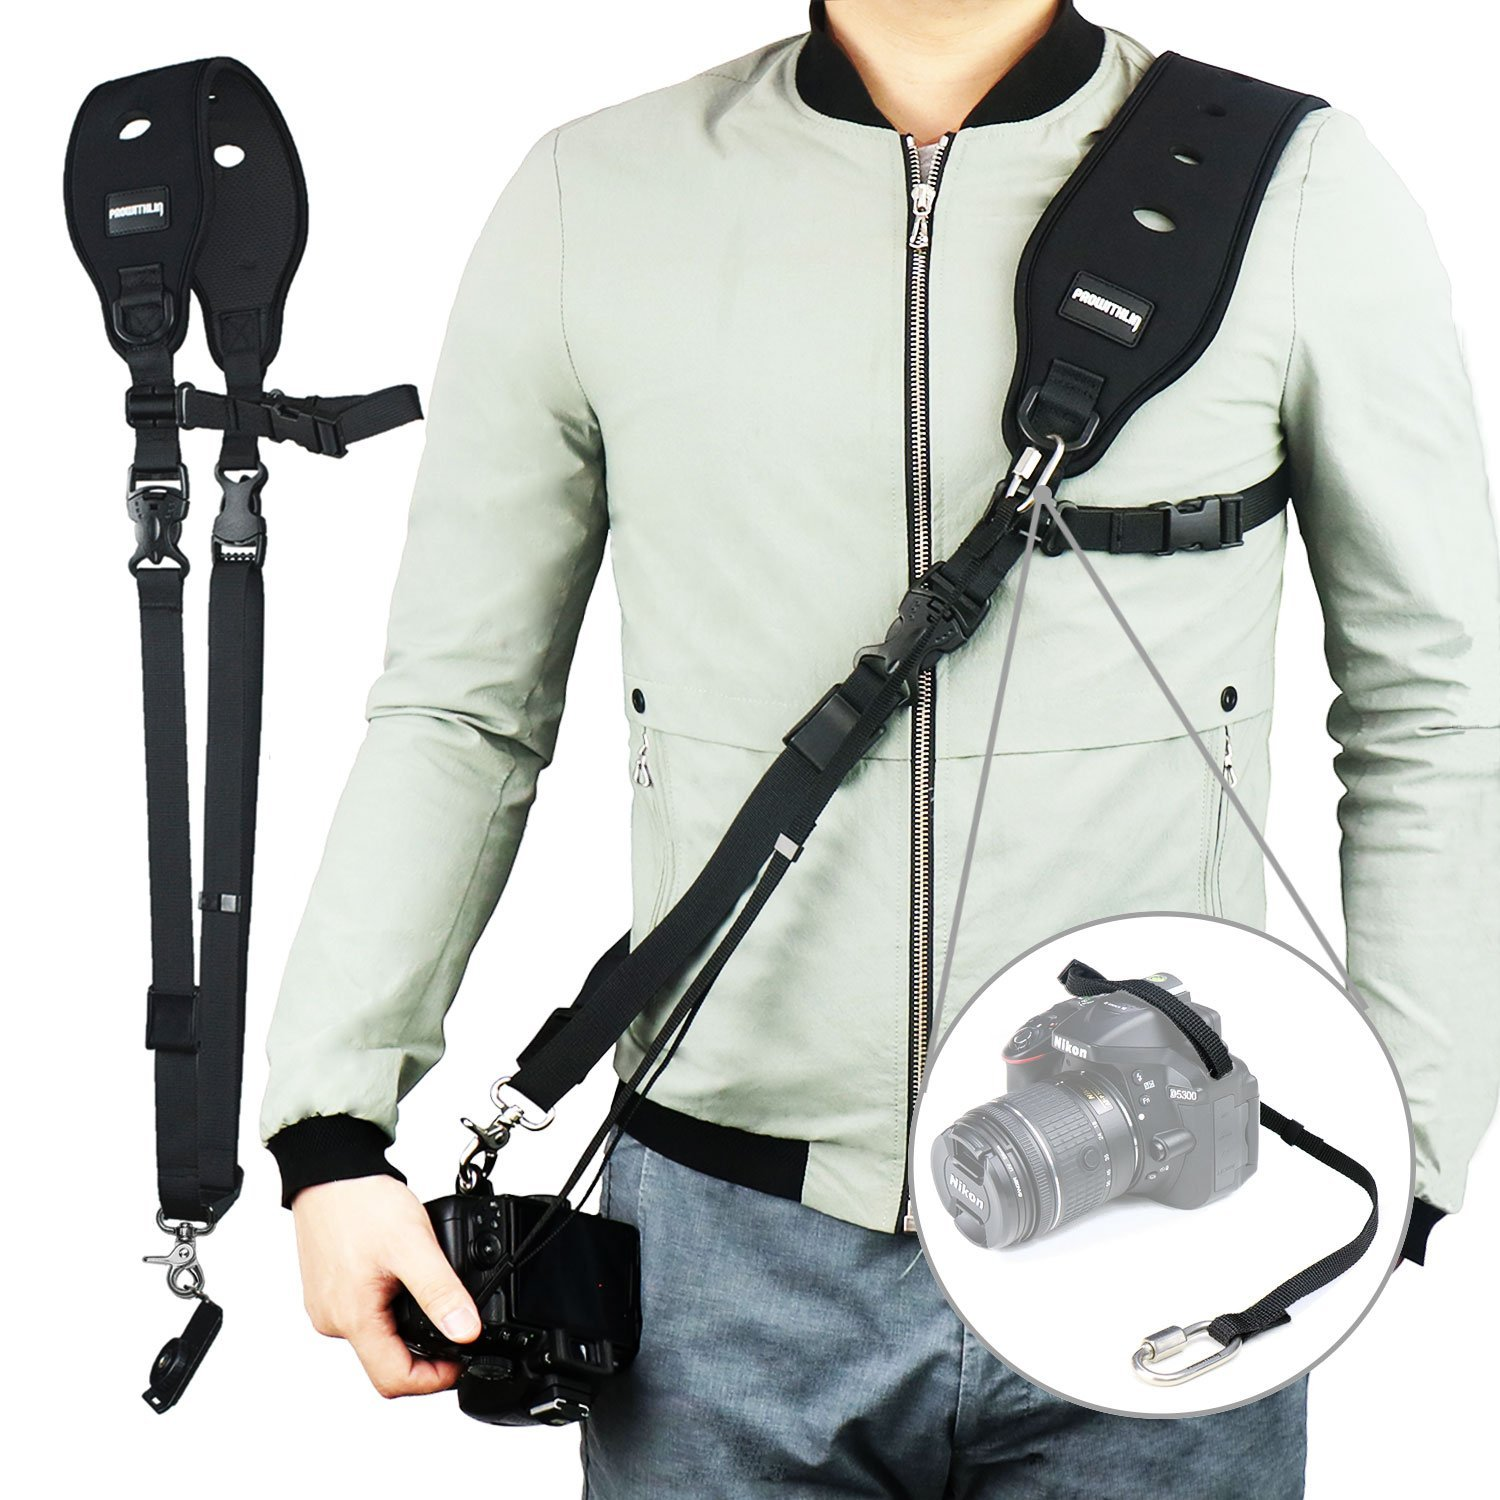 Camera Strap, Prowithlin Camera Strap for Women/Men w/Quick Realese Plate and Safety Tether (Upgraded Version)